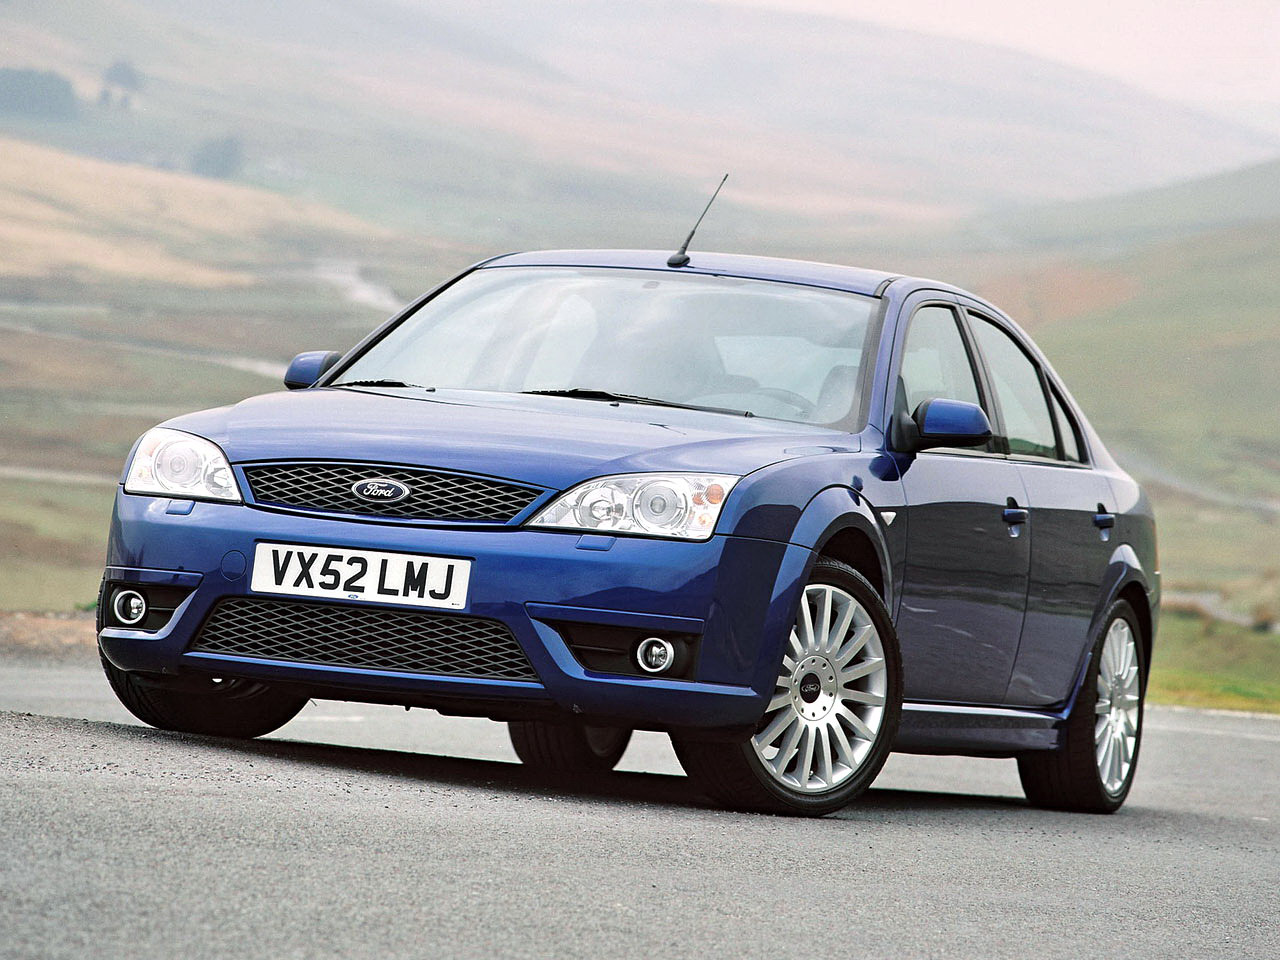 ford mondeo st220 sedan 2002 2004 ford mondeo st220 sedan 2002 2004 photo 10 car in pictures. Black Bedroom Furniture Sets. Home Design Ideas